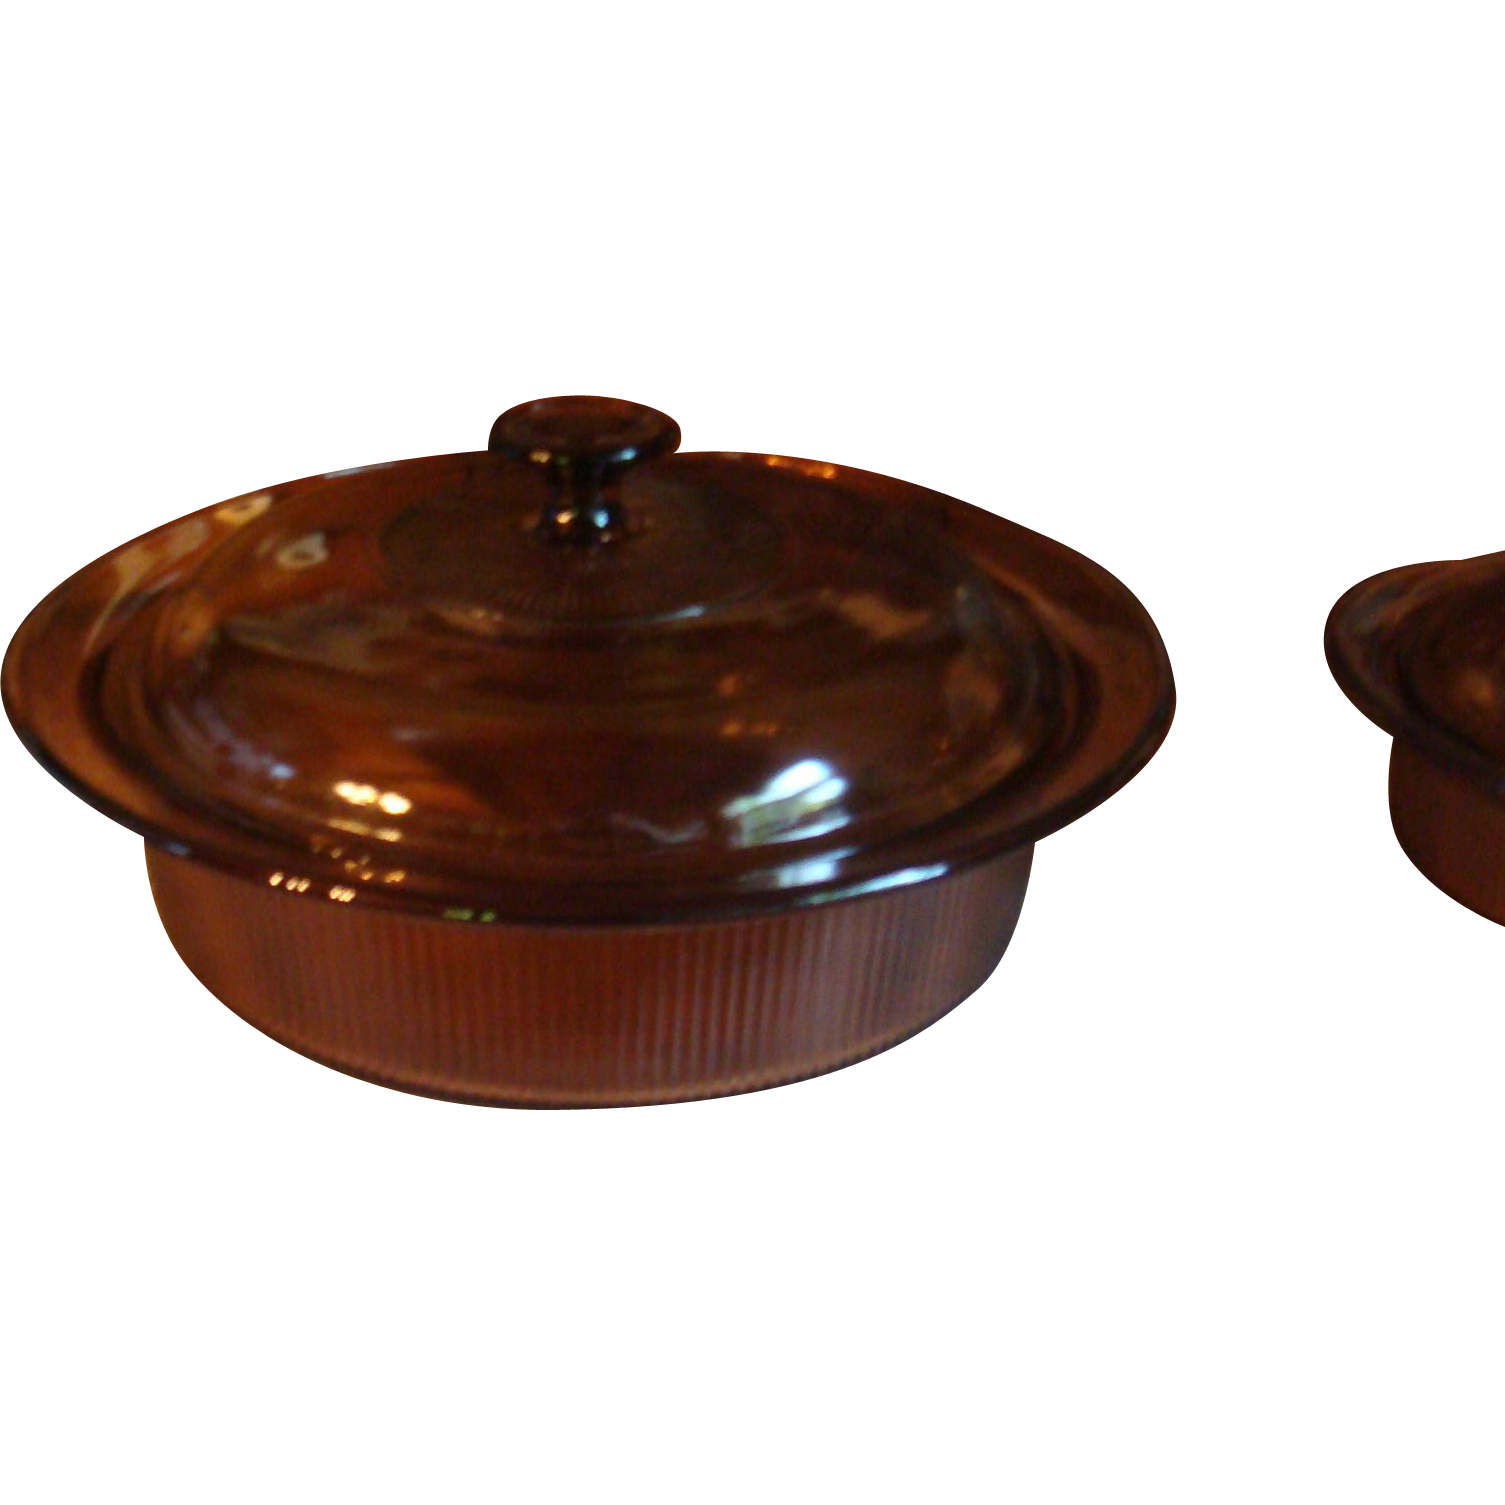 Large Corning Ribbed Glass Amber Visions 2.5 Quart Casserole With Lid Souffle Dish Cookware